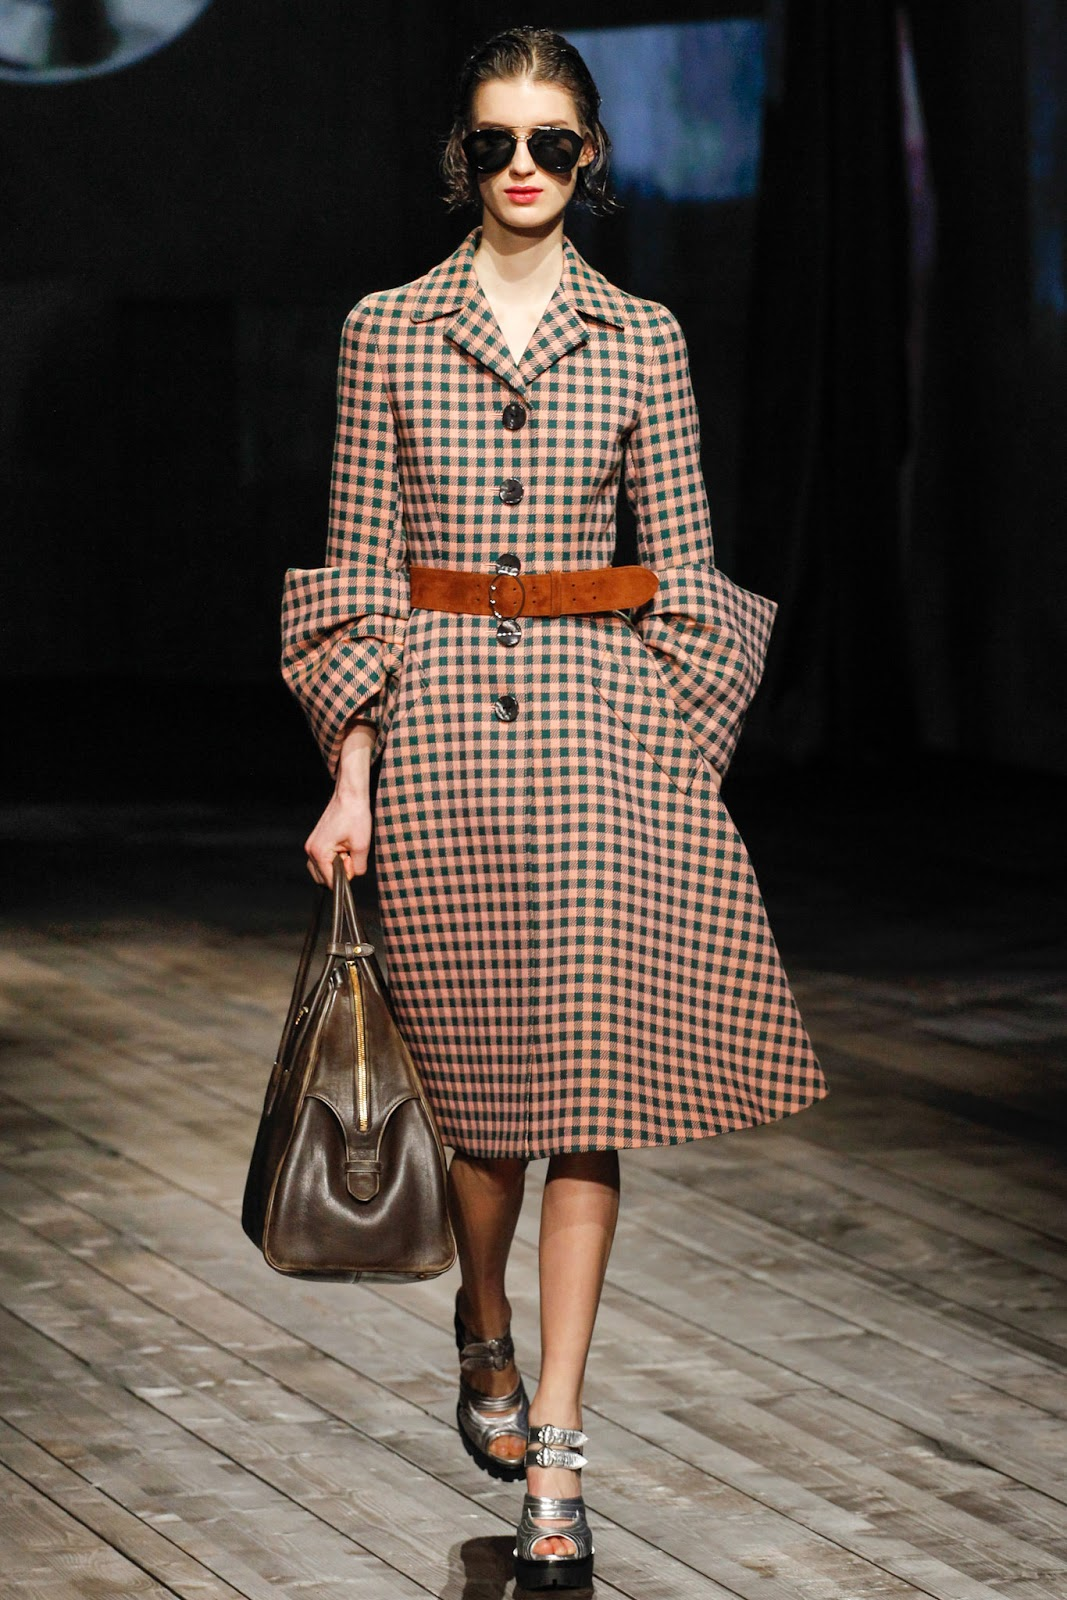 Prada Fall/Winter 2013